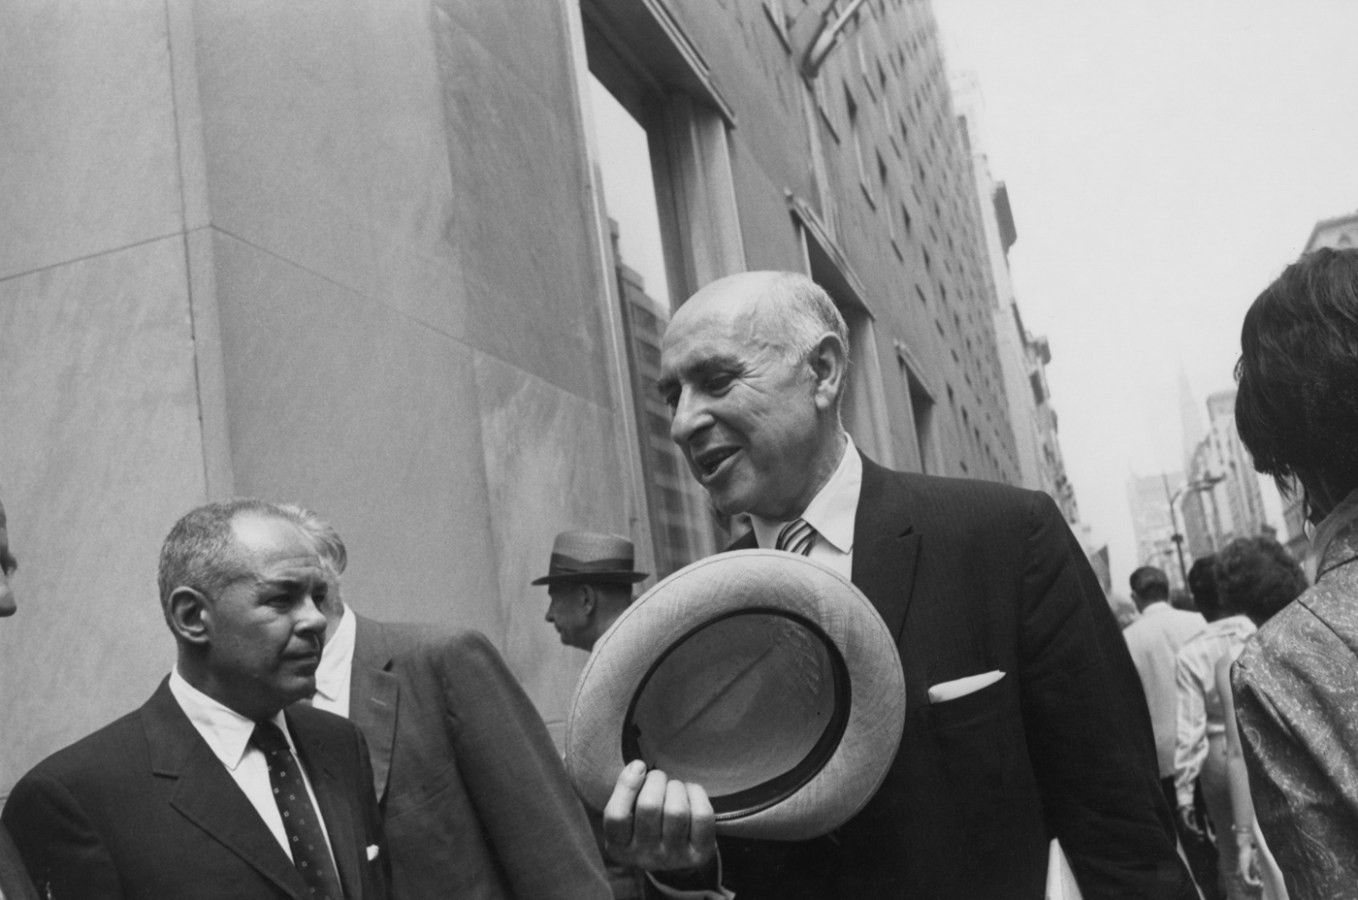 Black-and-white photograph of an older balding man in a suit holding a straw hat